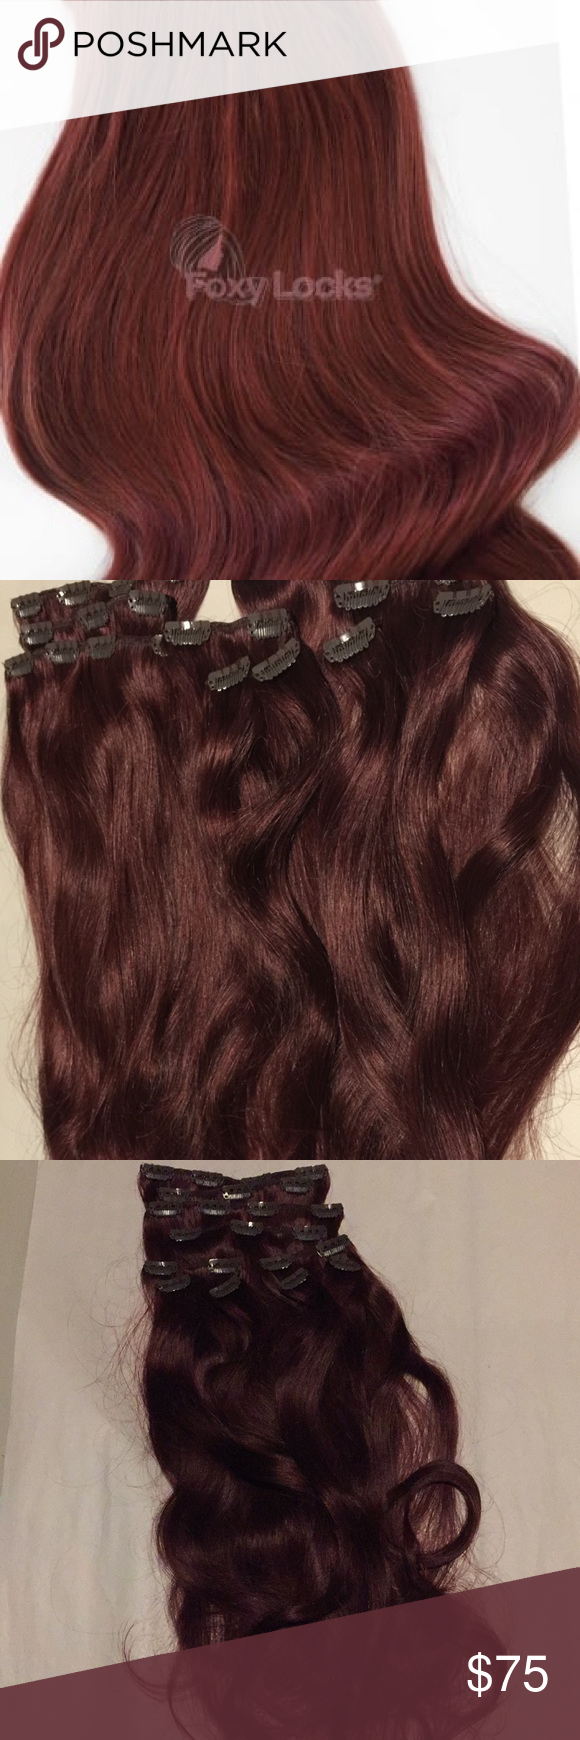 Mahogany Red Clip In Human Hair Extensions New Without Tags Never